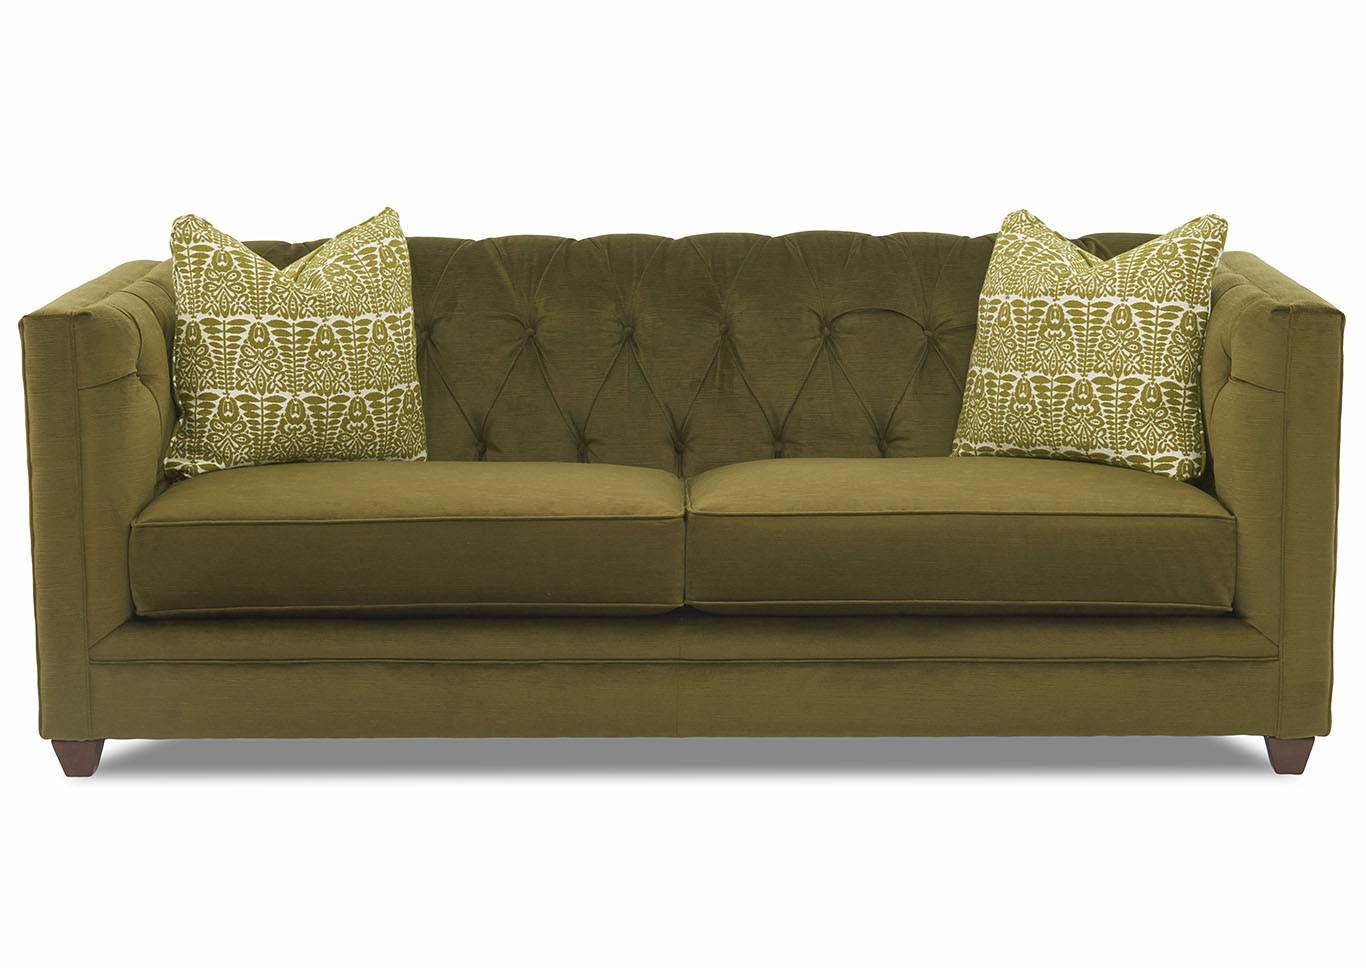 Felicity Algae Stationary Fabric Sofa,Klaussner Home Furnishings